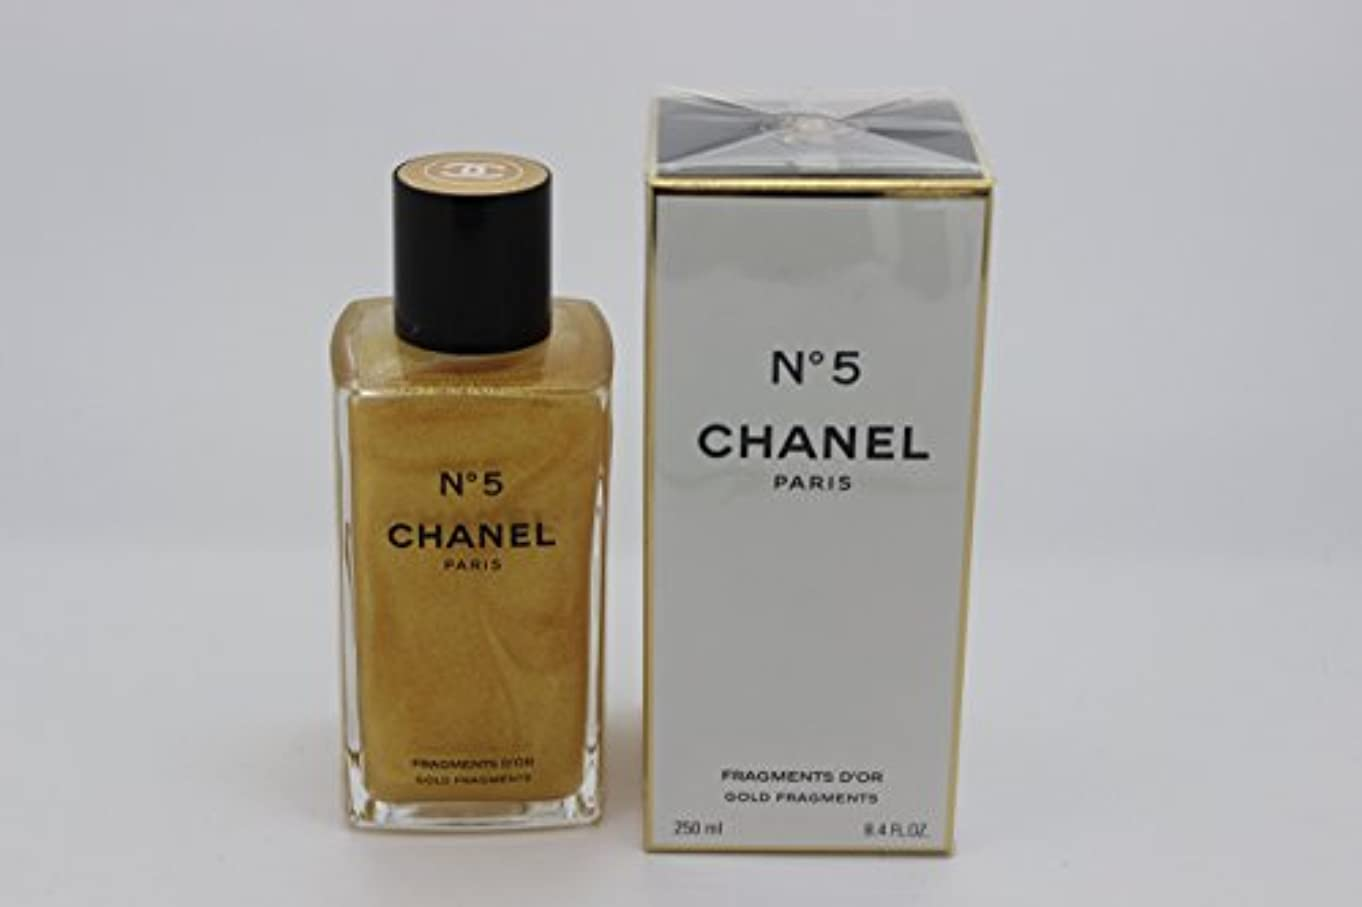 挑発するダイジェストわなChanel No. 5 (シャネル No. 5) 8.4 oz (252ml) Gold Fragments Shimmering Body Gel for Women